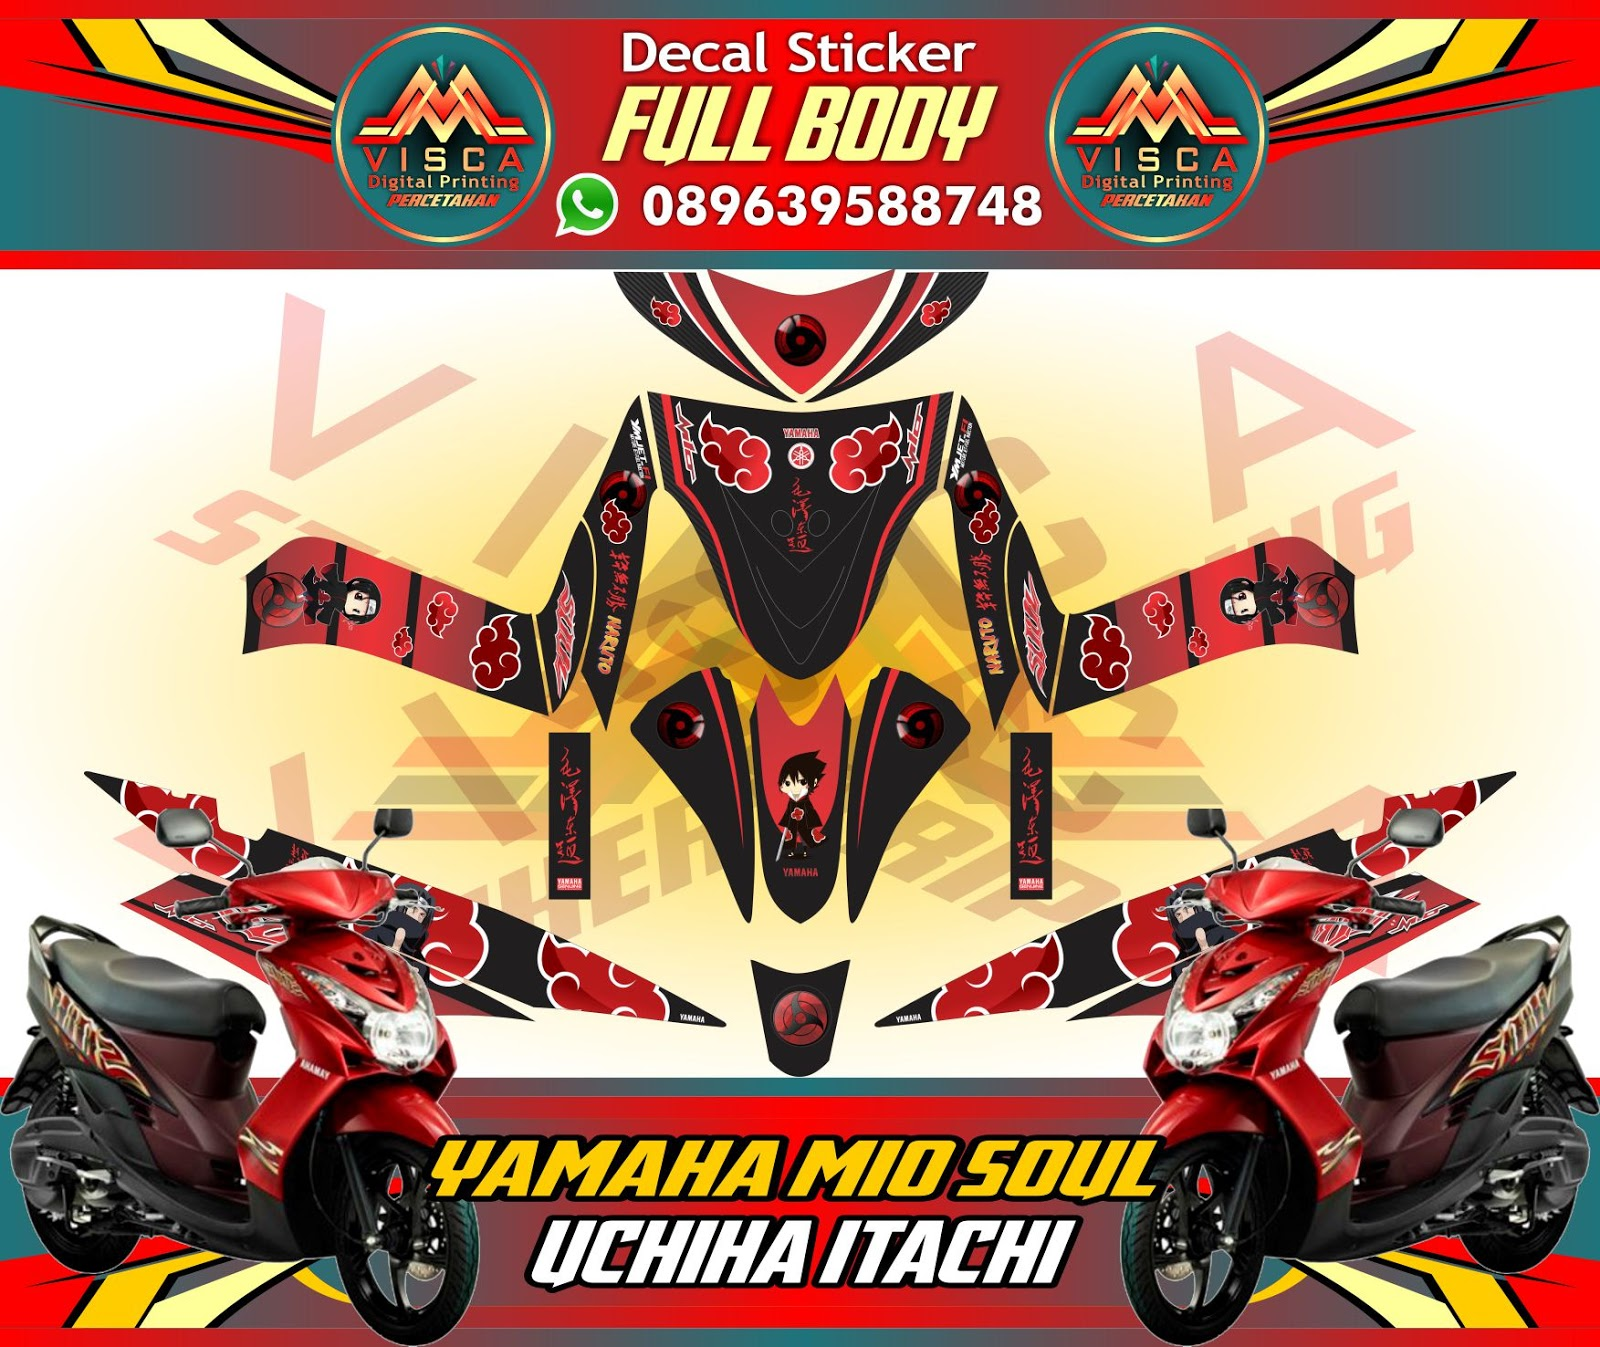 Decal stiker motor full body yamaha mio soul posted by m visca computer at 23 28